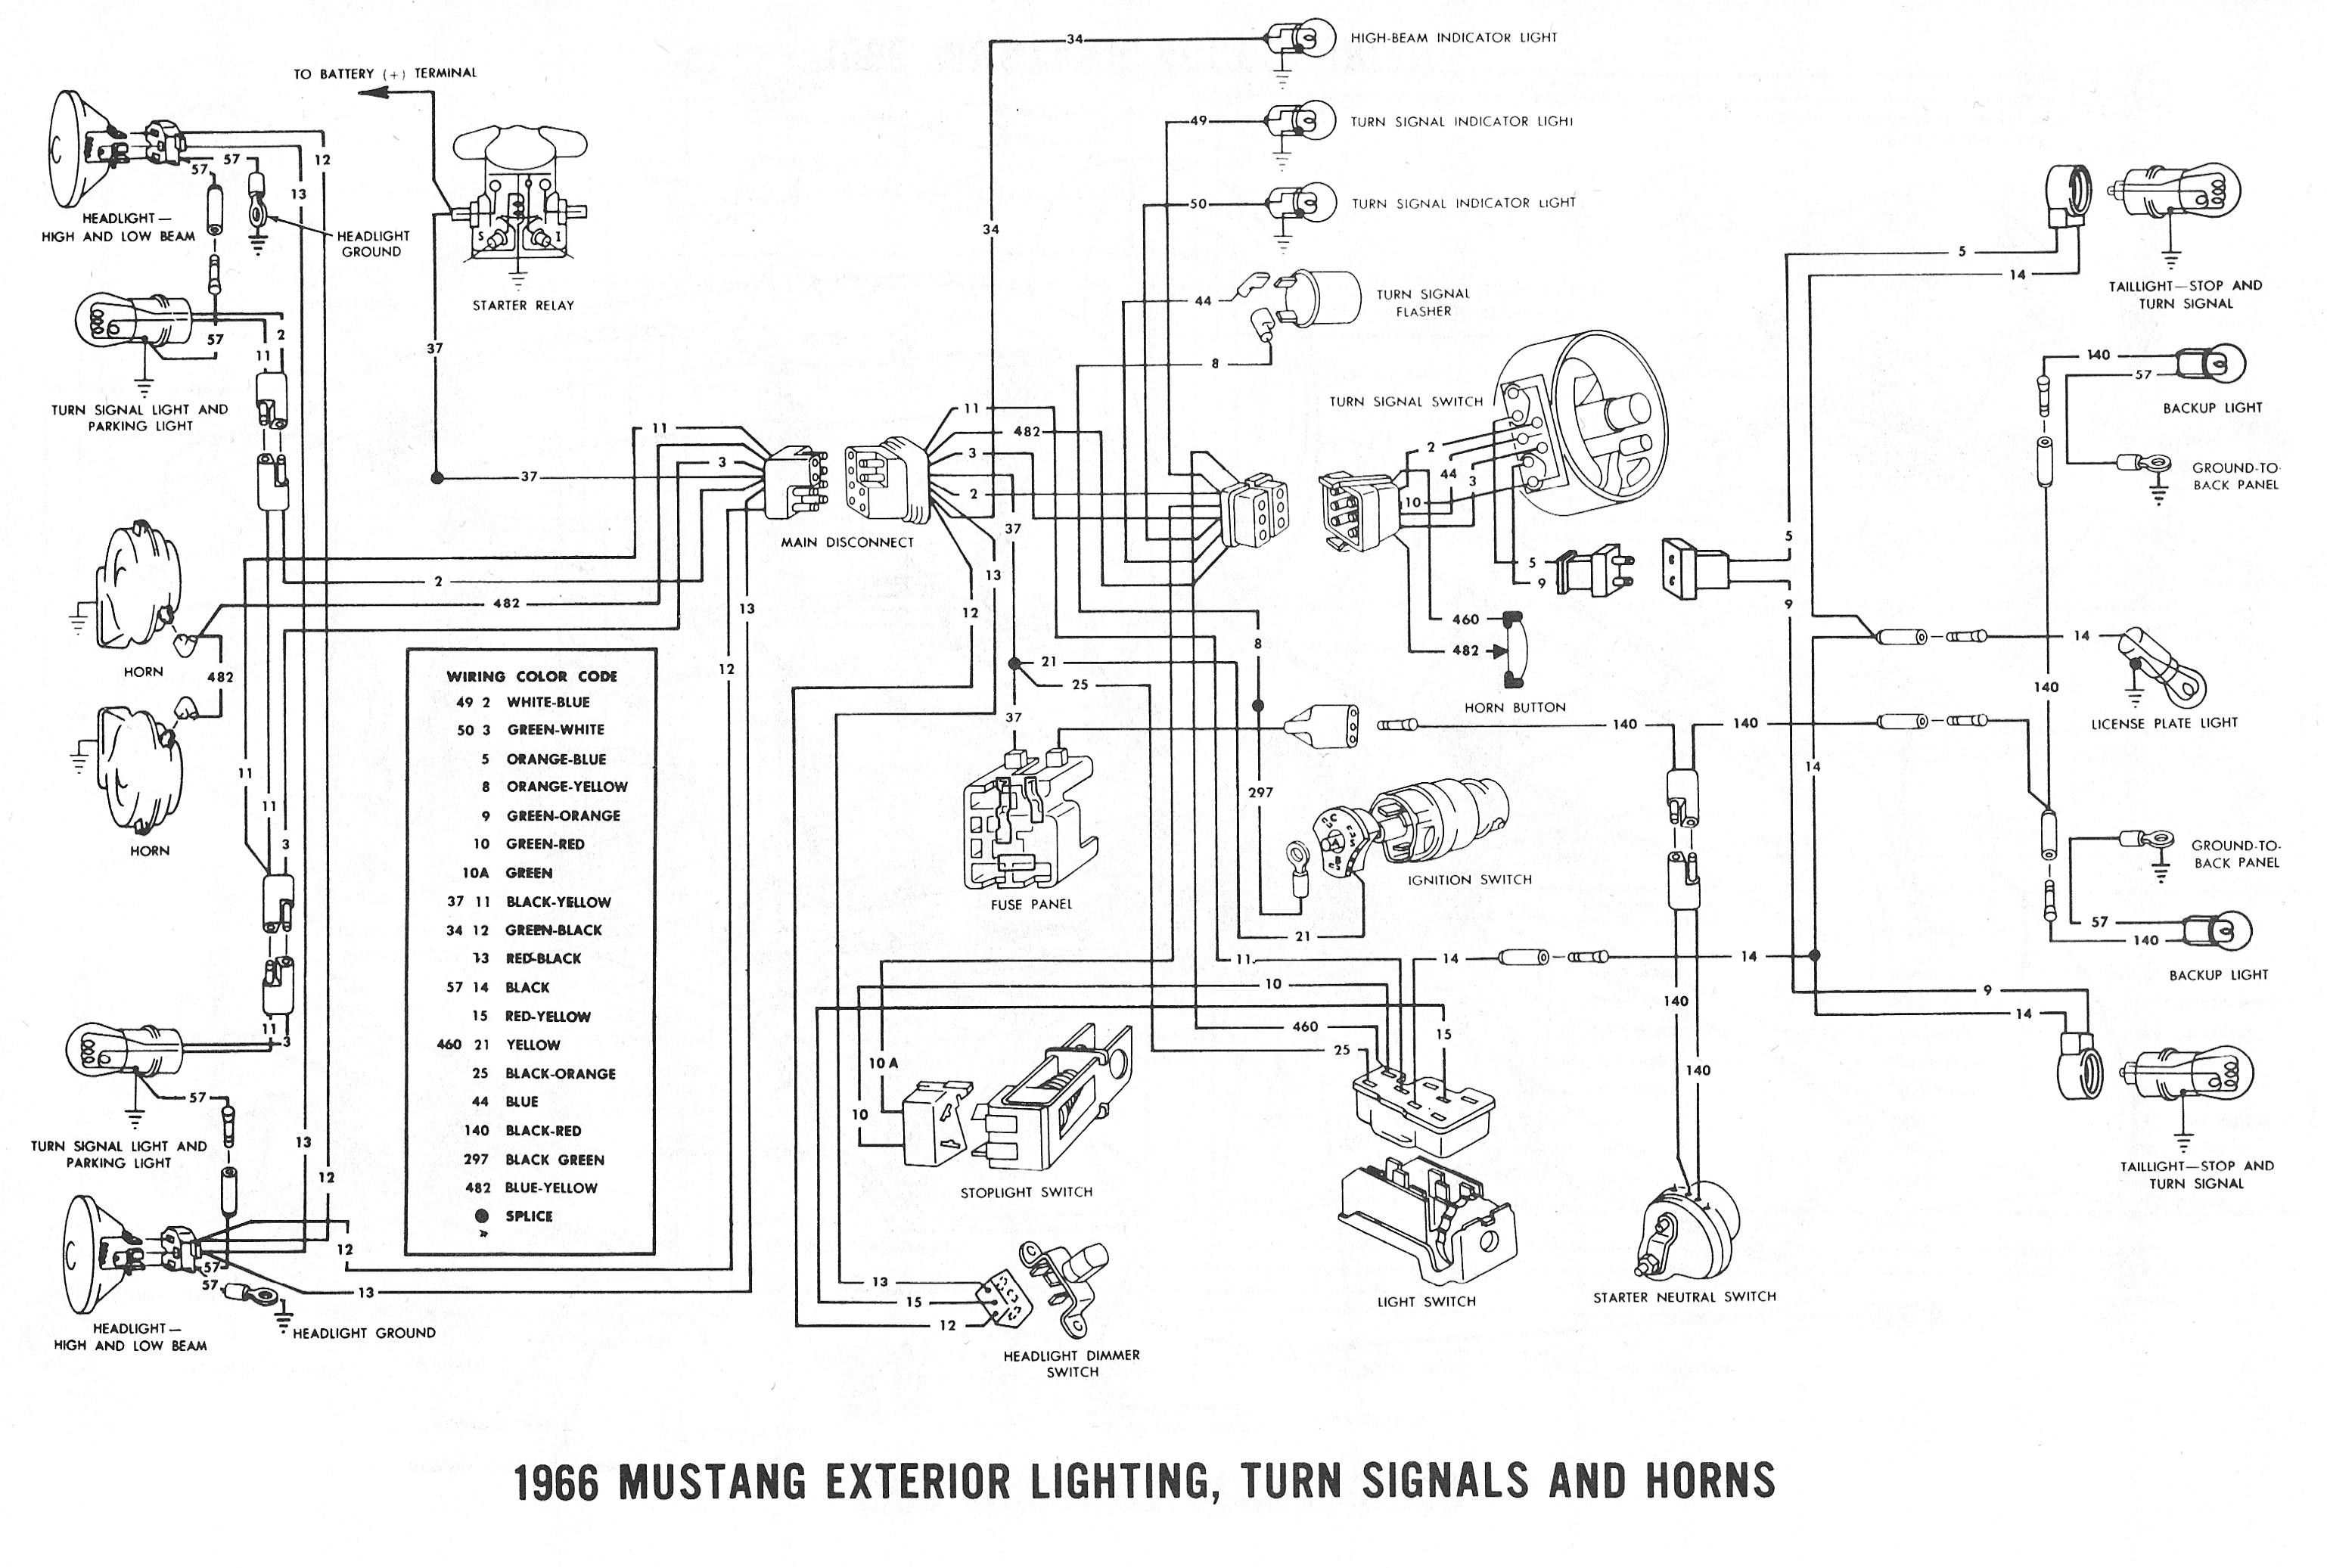 65 Ford Mustang Ignition Switch Wiring - Wiring Diagram Source